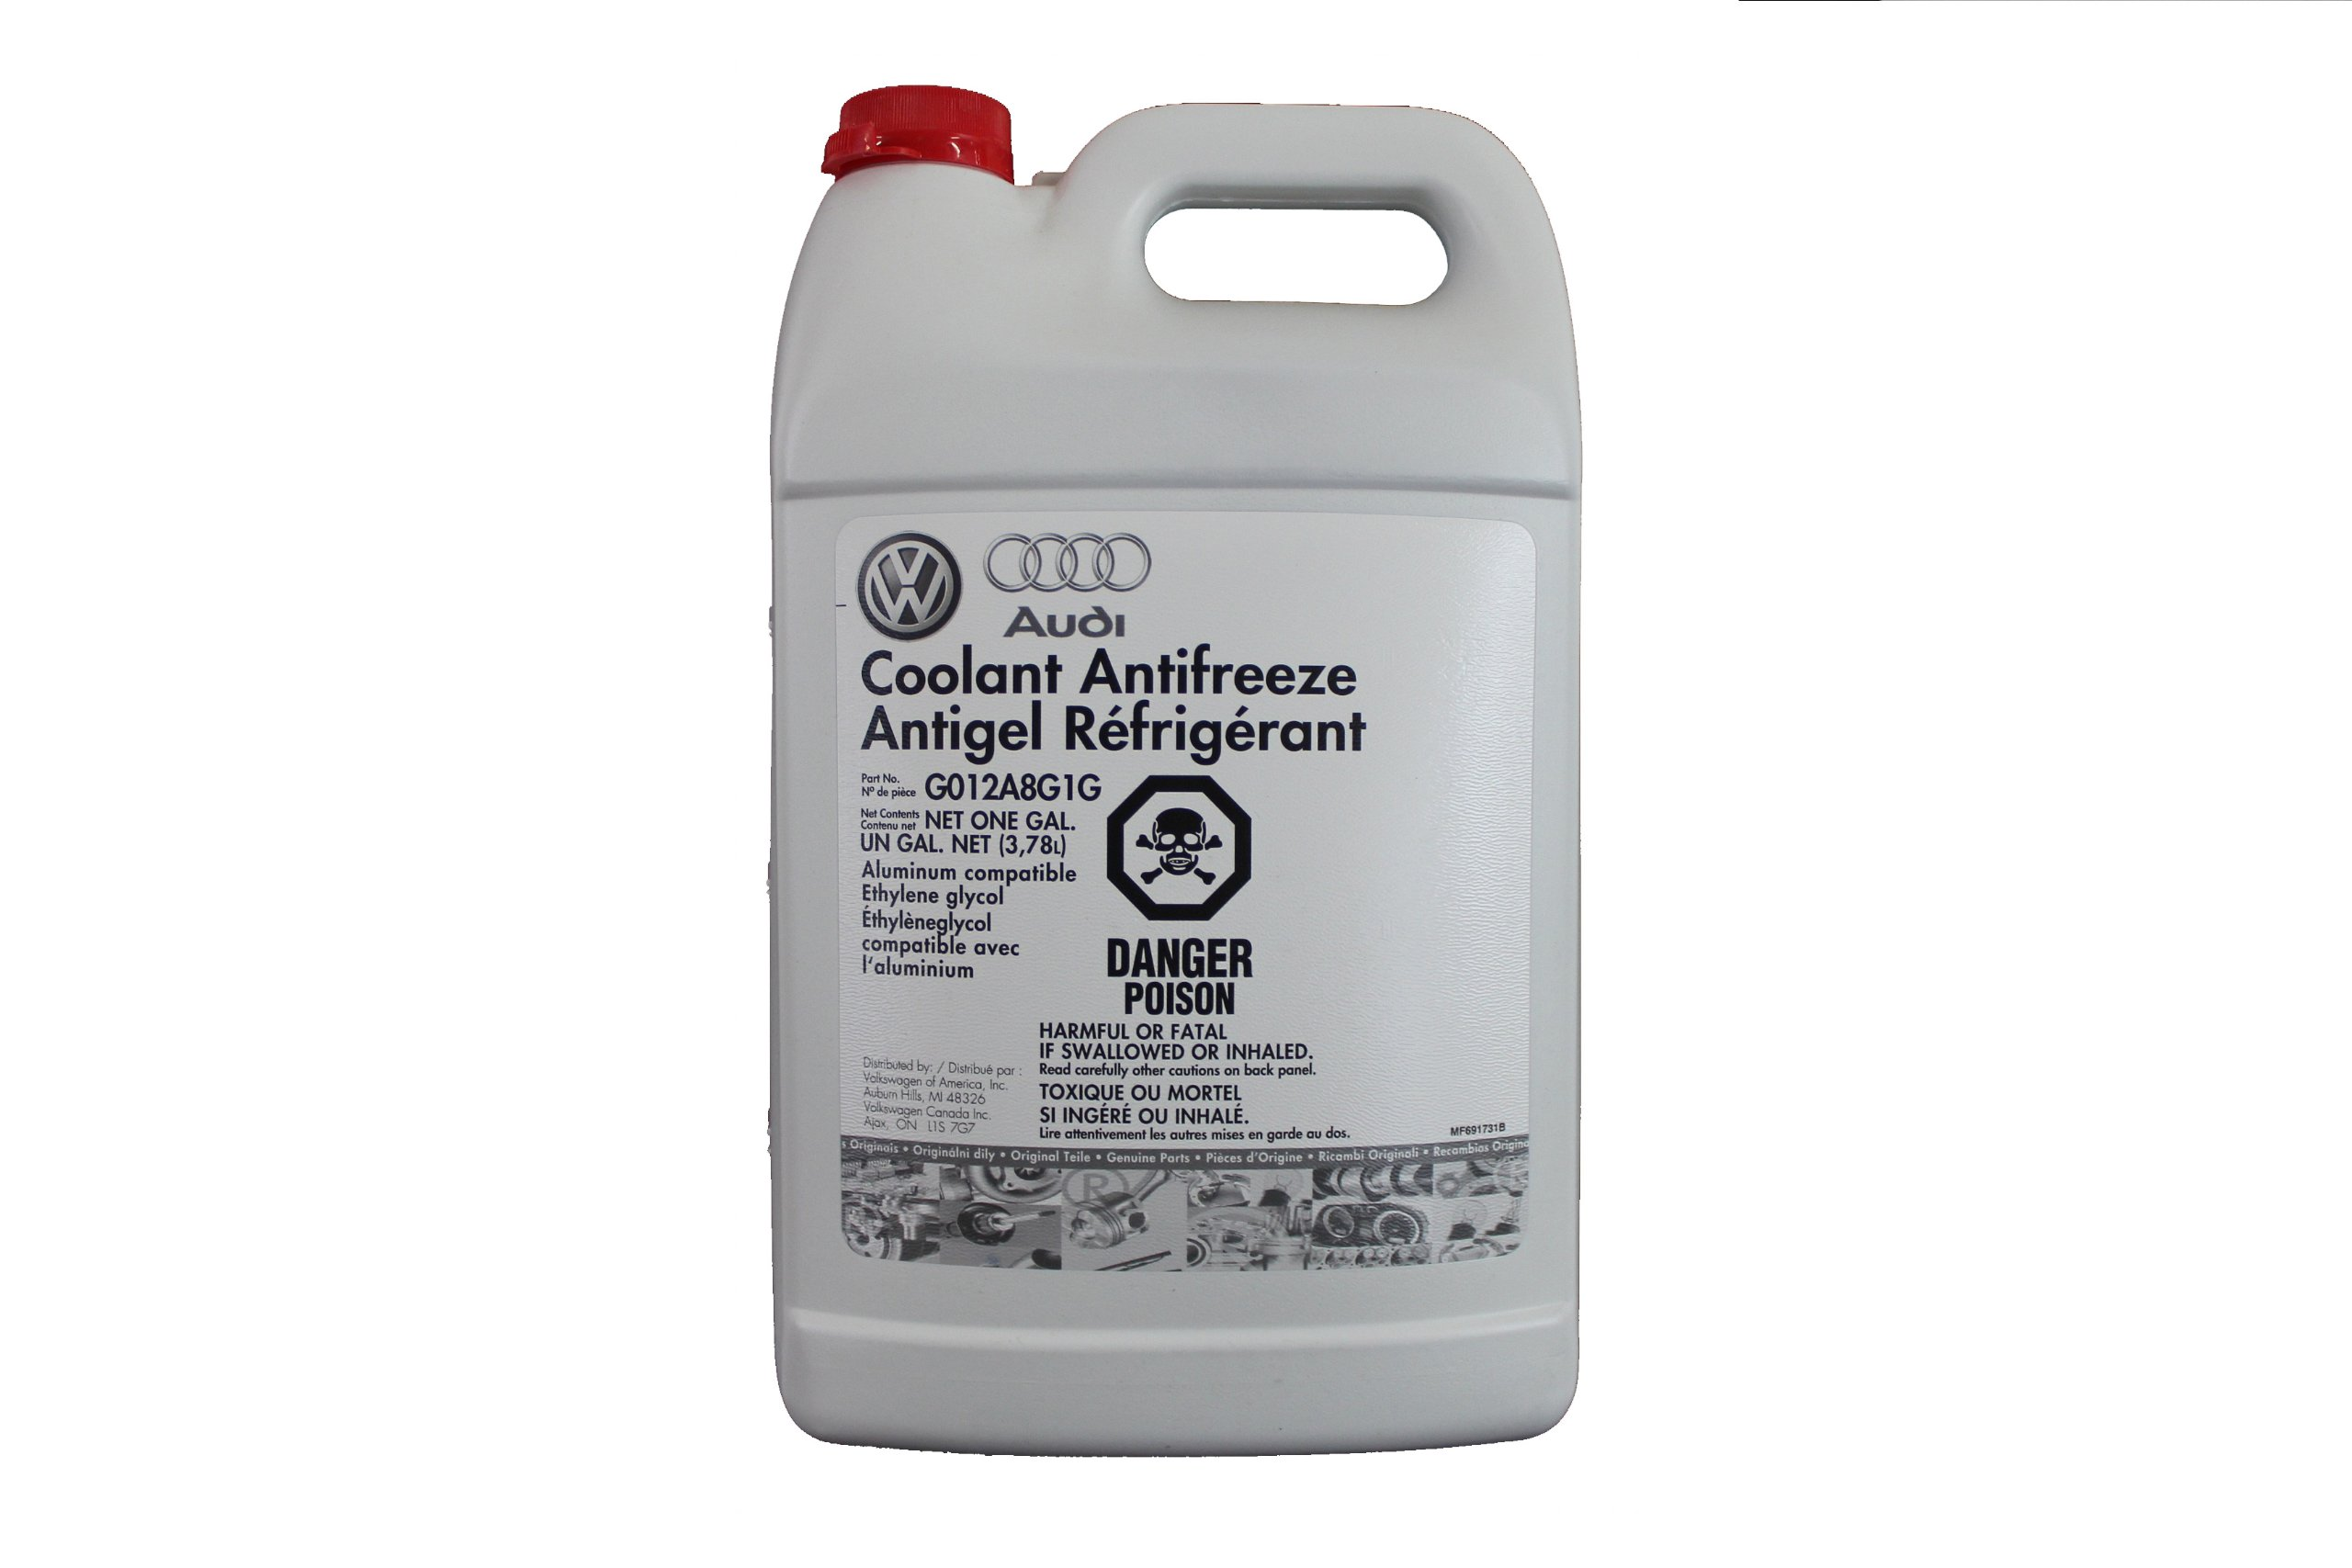 Audi Coolant Antifreeze Antigel Refrigerant (Part No. G013A8J1G)